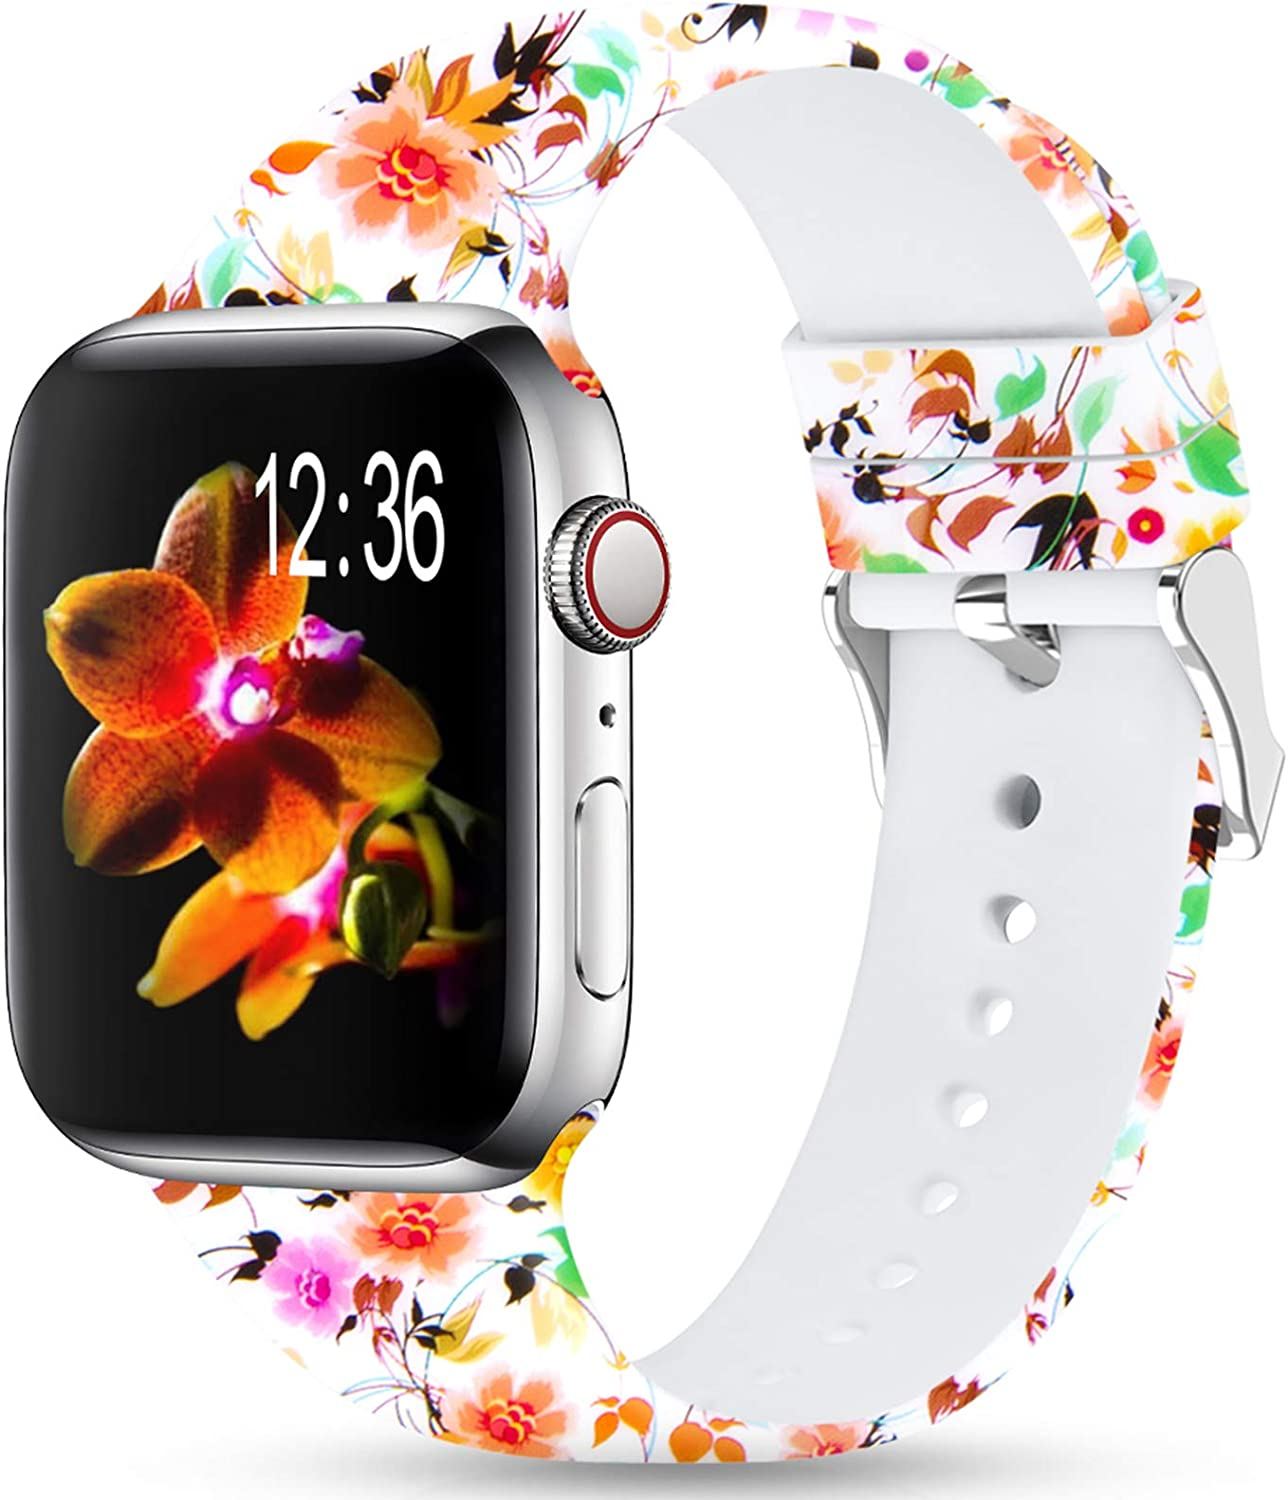 Merlion Compatible With Apple Watch Band 38mm 42mm 40mm 44mm For Women/Men,Silicone Fadeless Pattern Printed Replacement floral Bands for iWatch Series 4/3/2/1